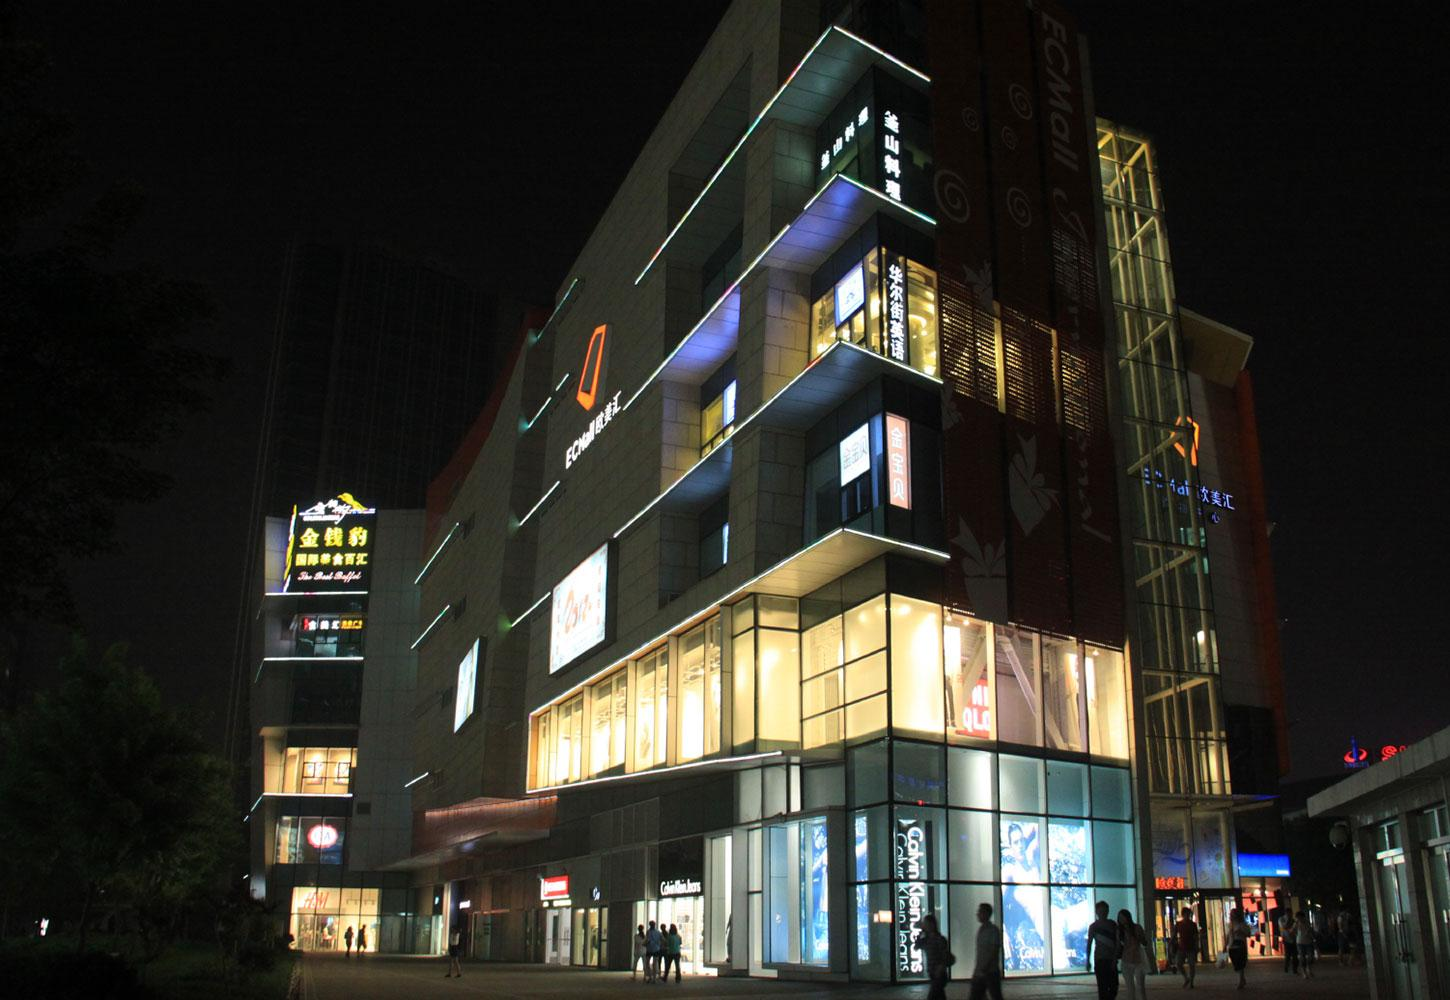 External view of shopping mall